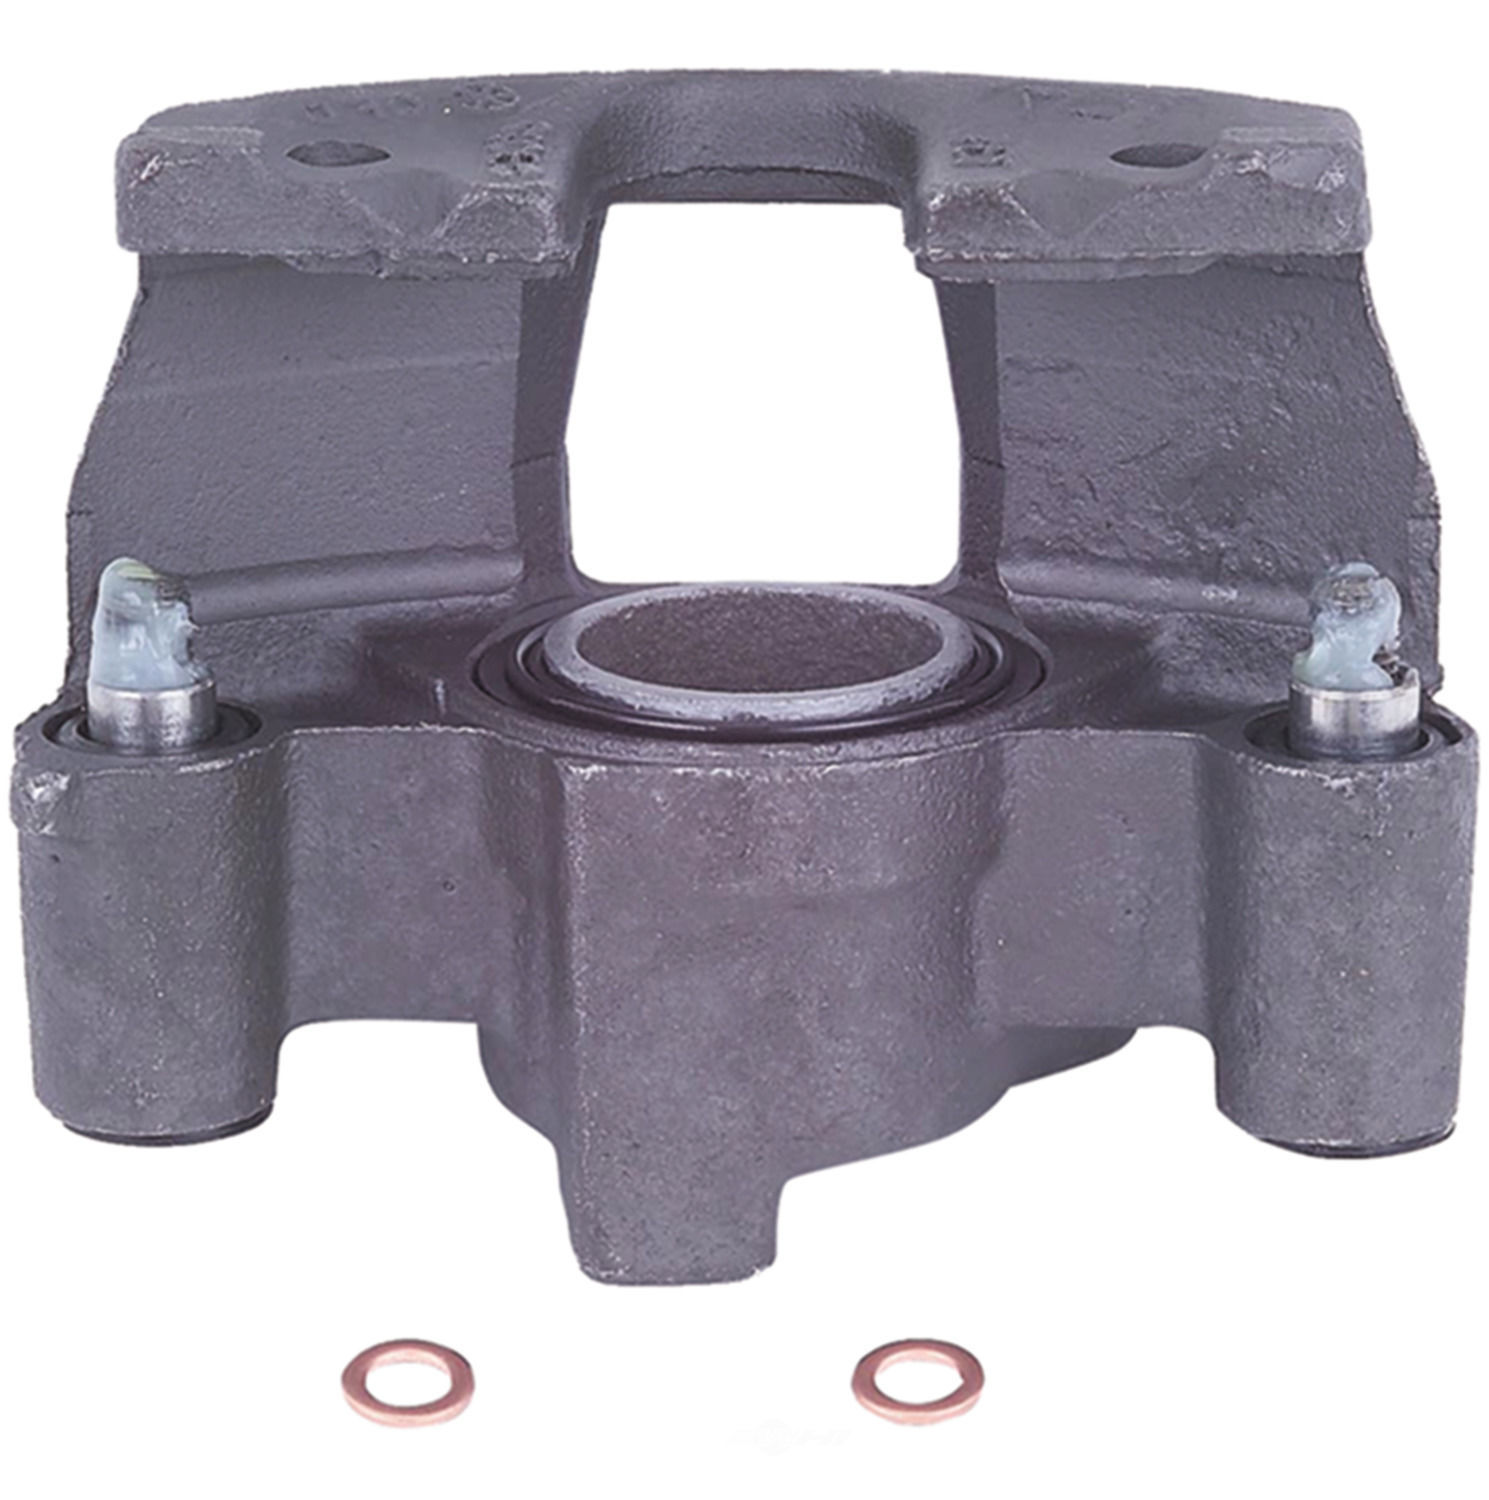 PRONTO/CARDONE - Remanufactured Friction Choice Caliper - PNX 18-4356